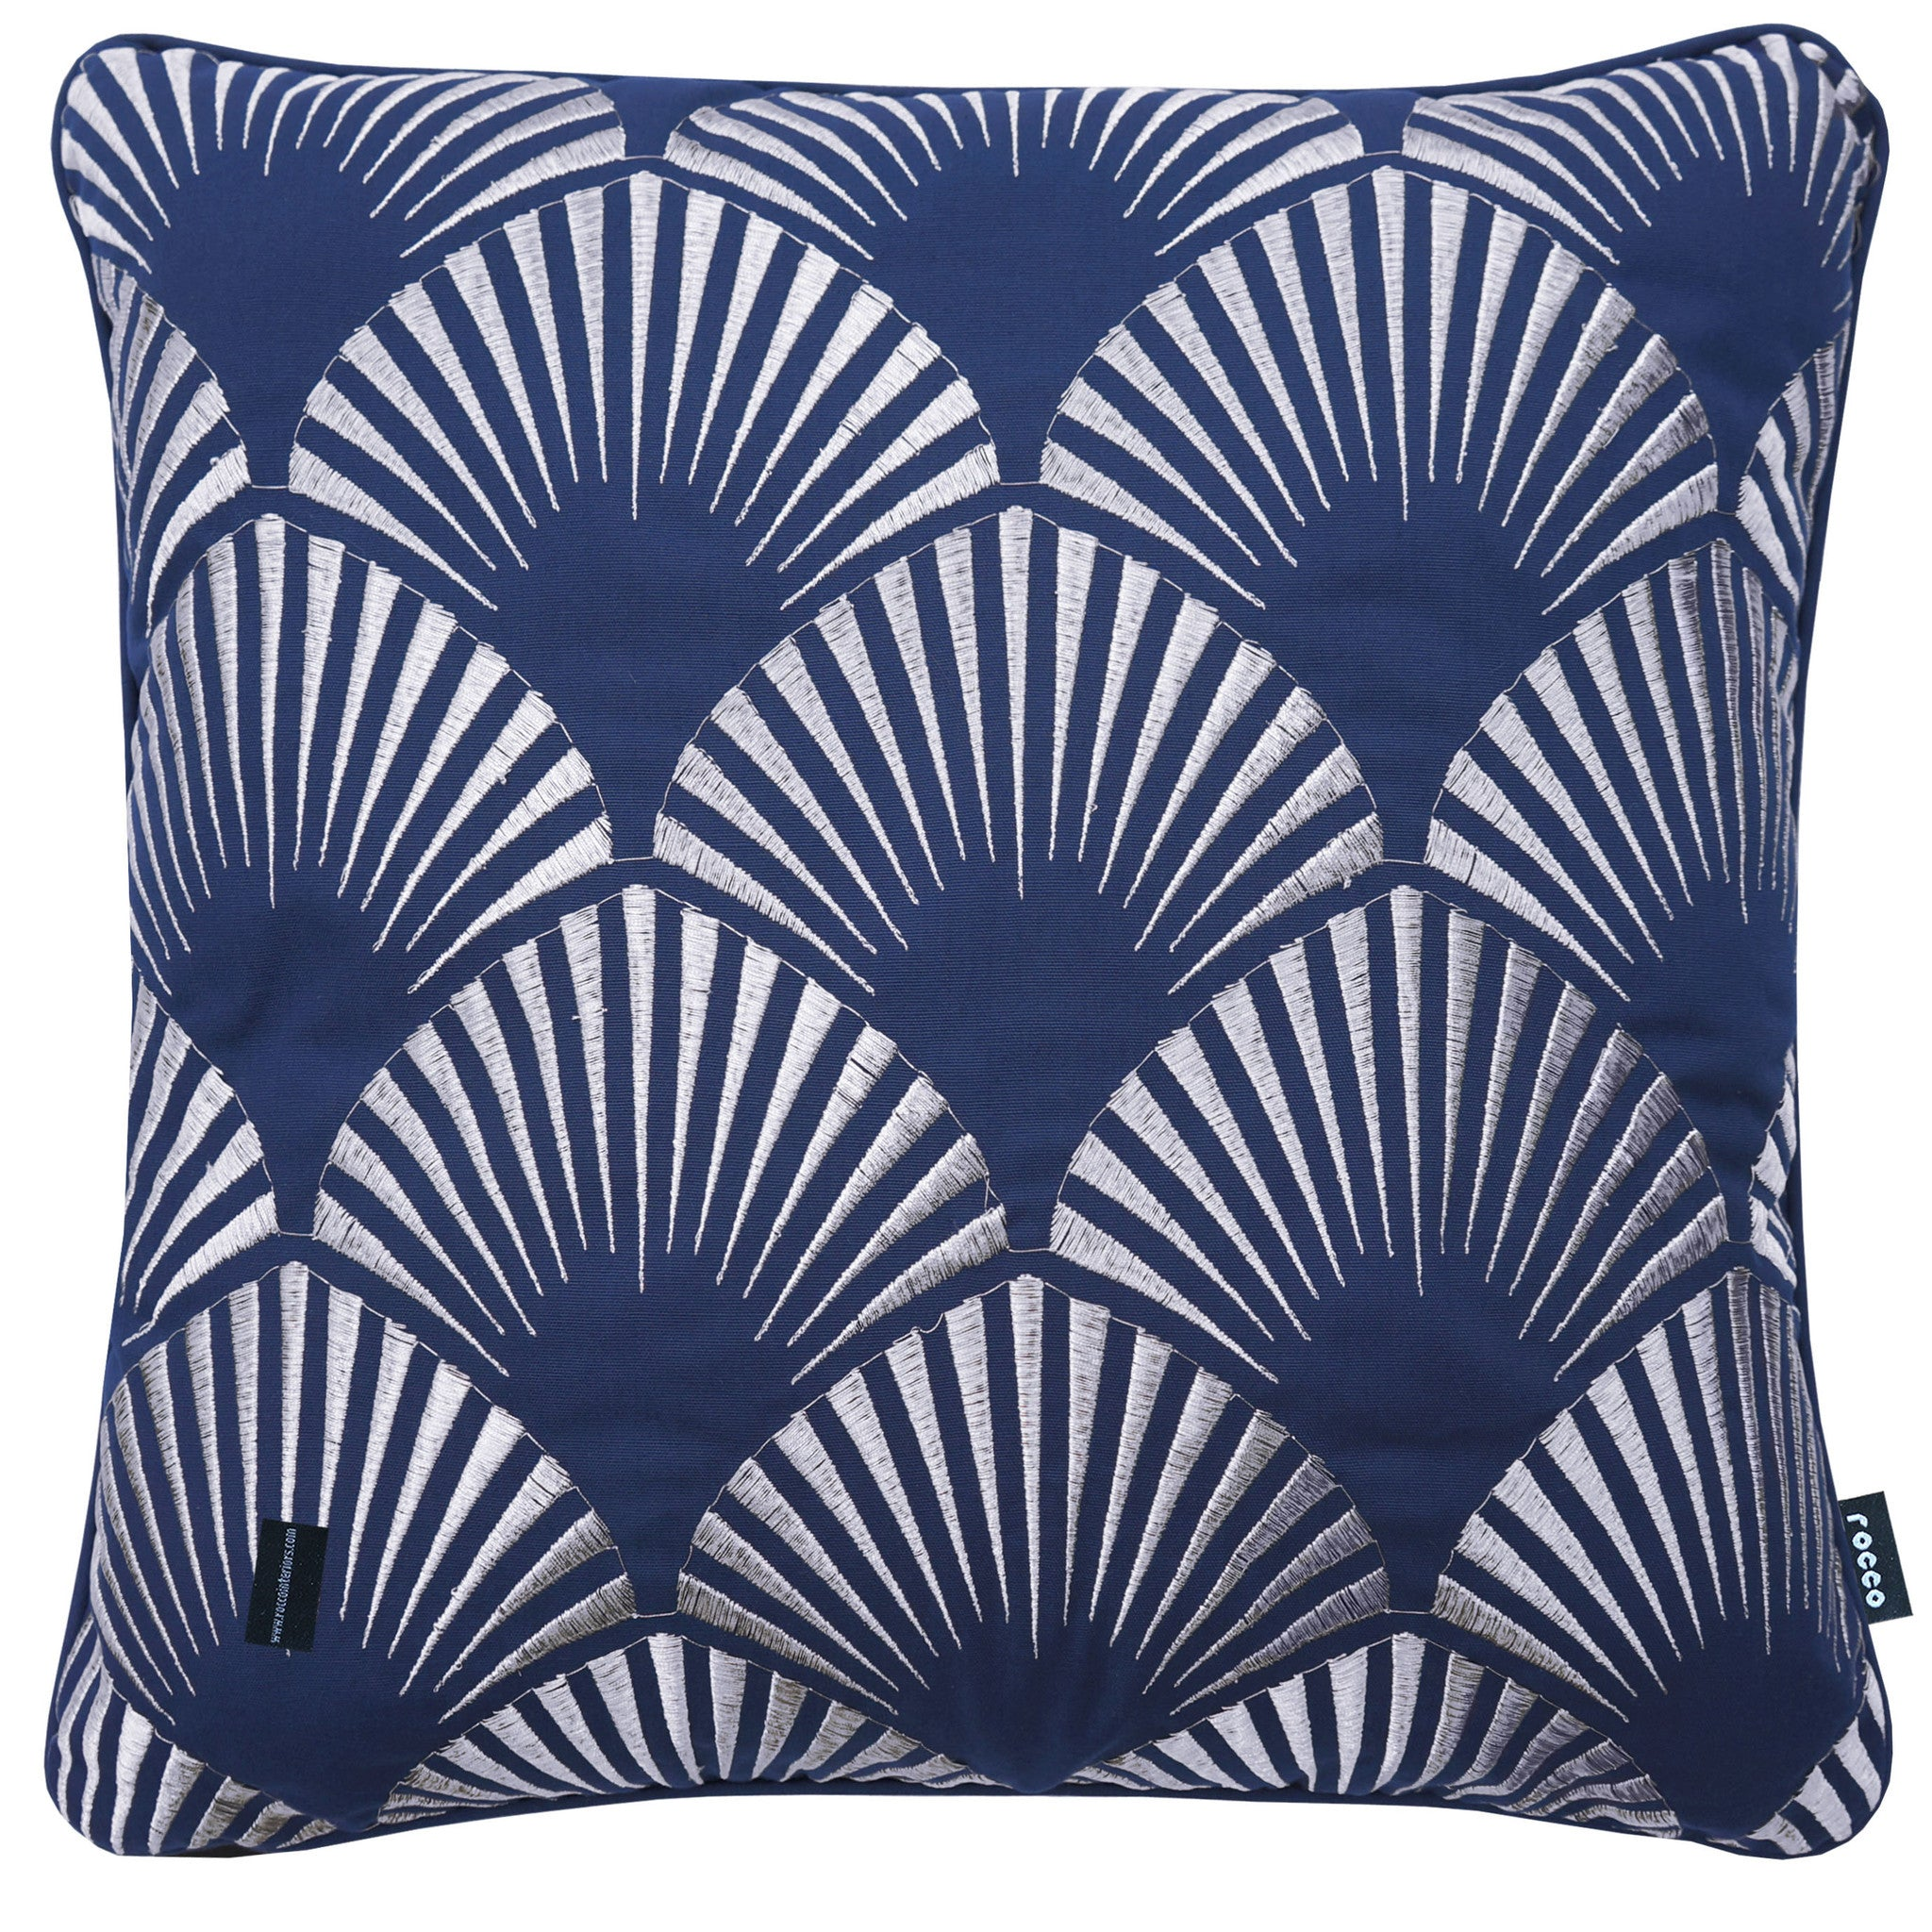 Rocco Shell Metallic Navy 43 x 43cm Filled Cushion - Set Of 4